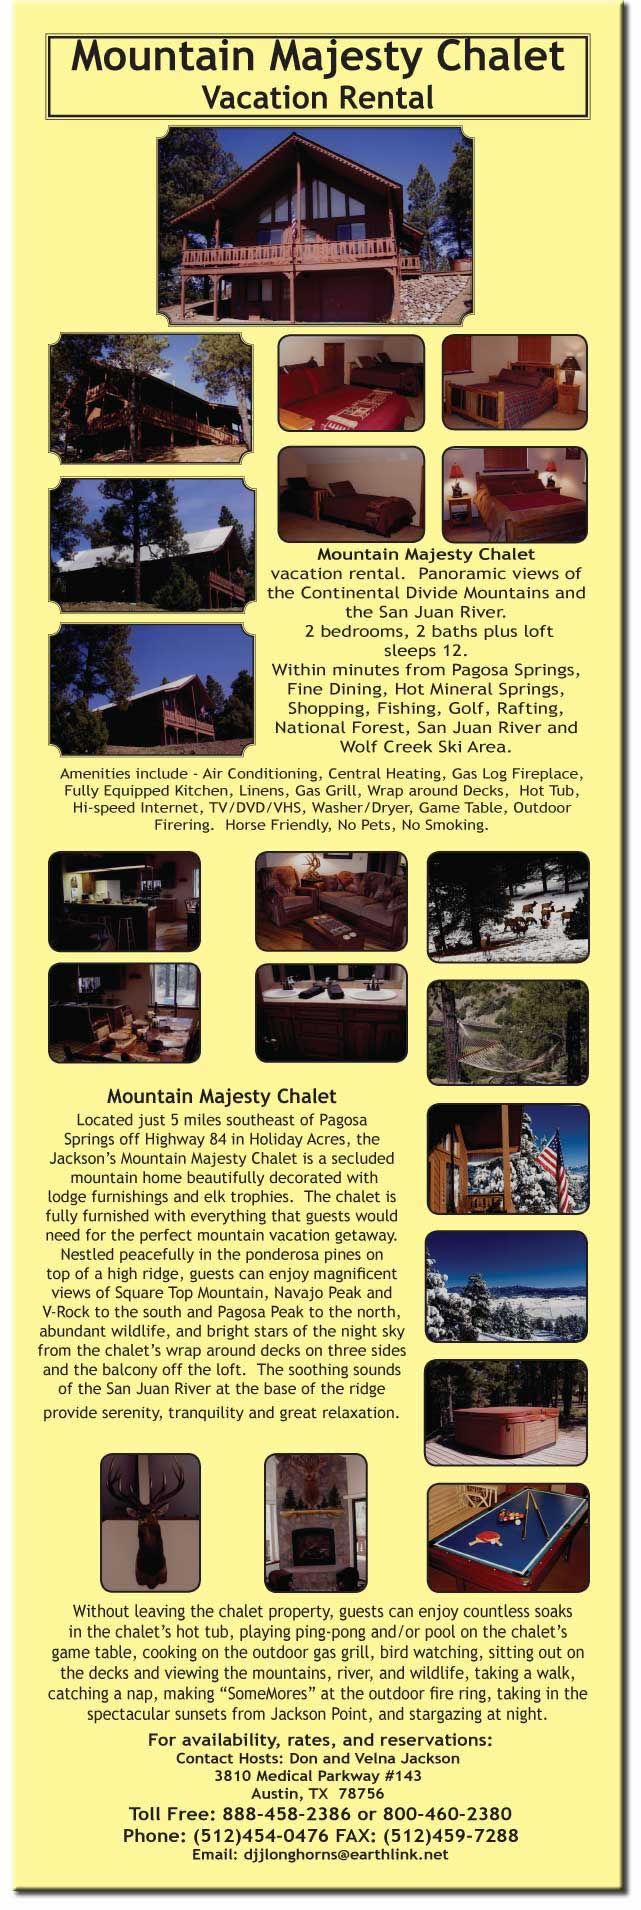 Mountain Majesty Chalet Vacation Rental